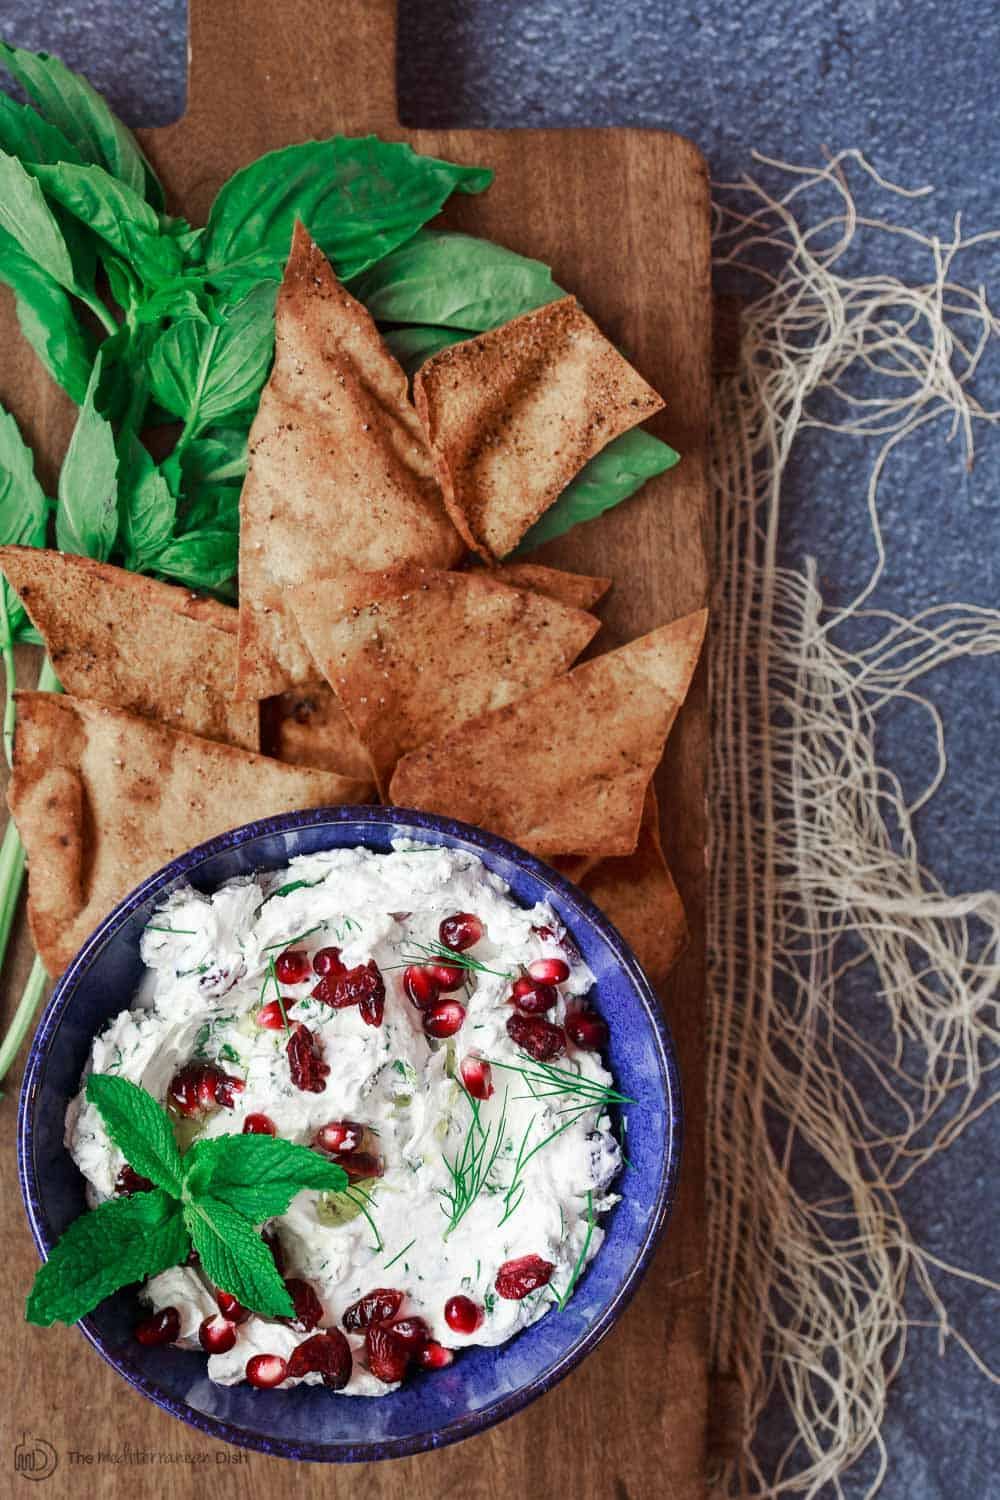 Pita chips and labneh ready to be served